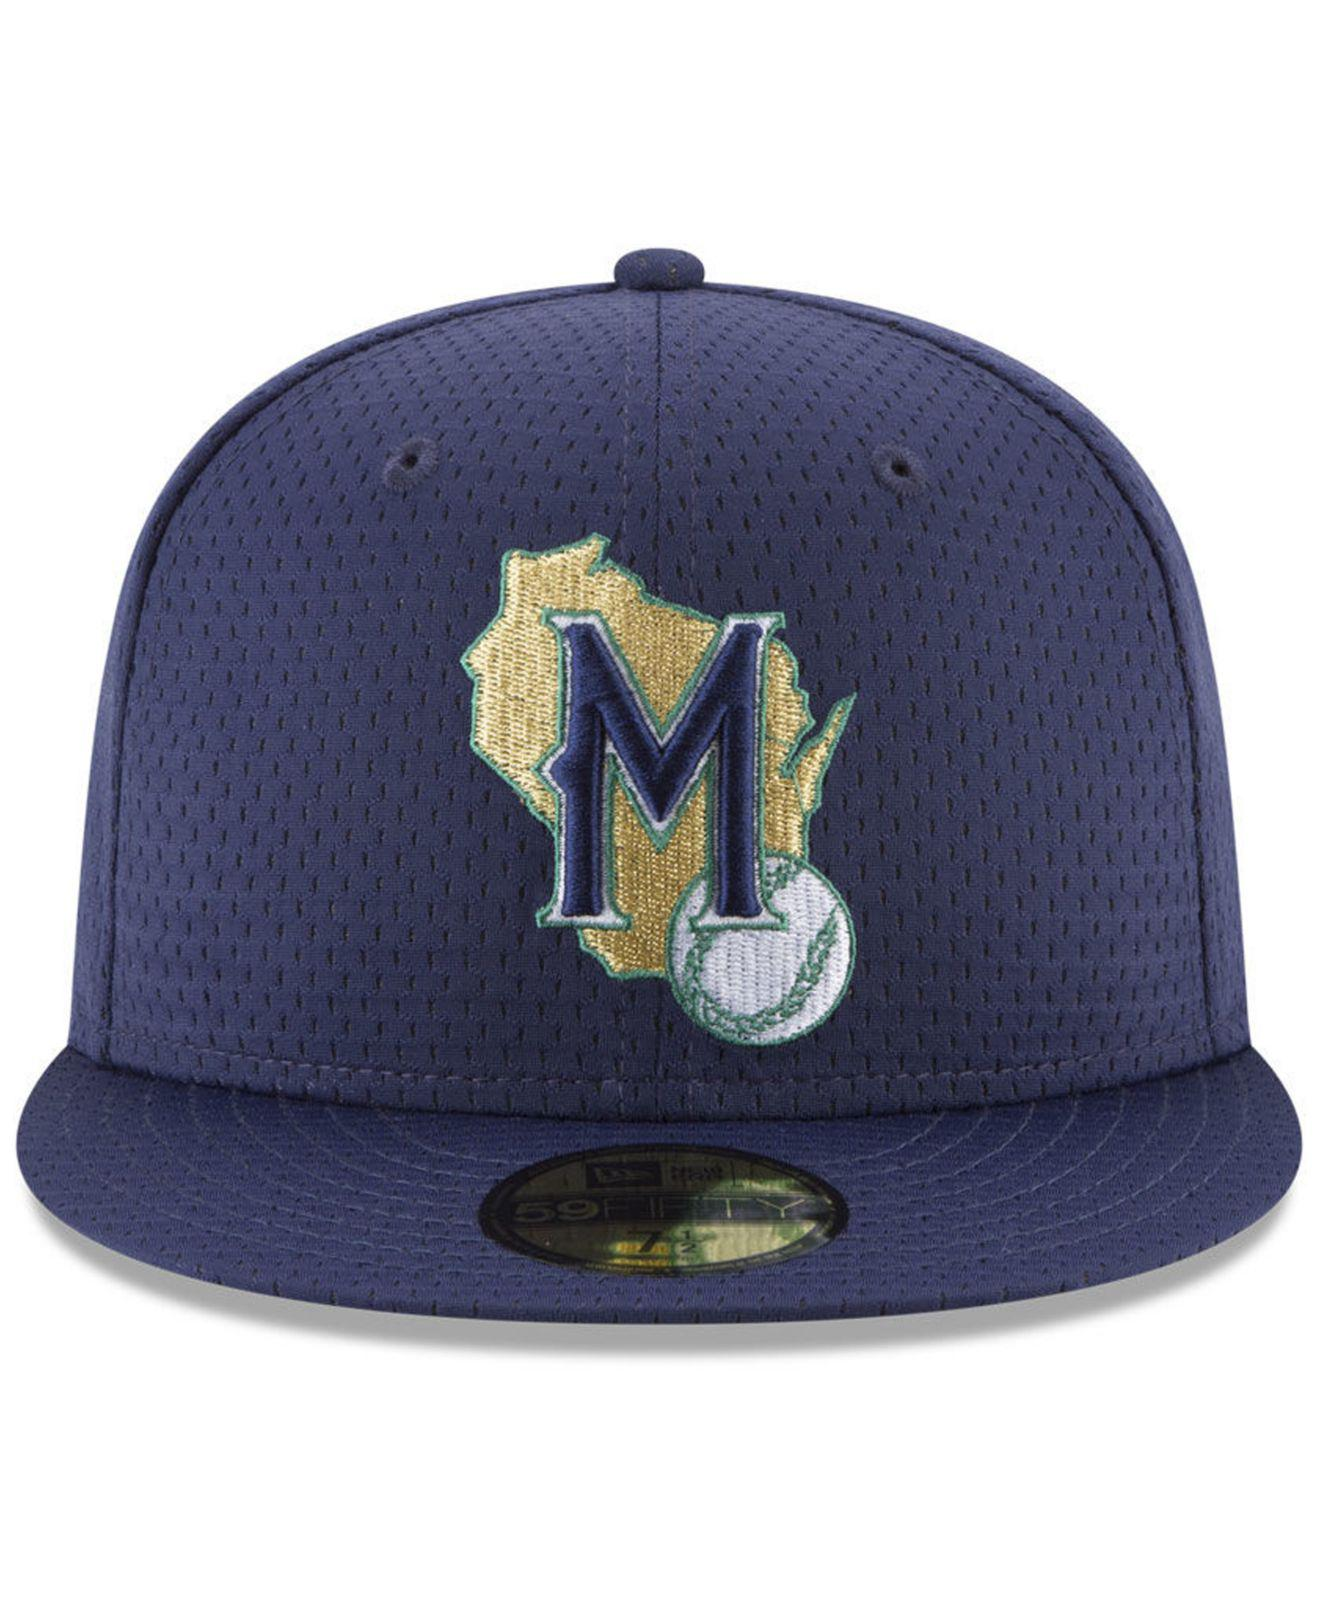 hot sale online f6616 43f38 KTZ Milwaukee Brewers Retro Classic Batting Practice 59fifty Fitted Cap in  Blue for Men - Save 8% - Lyst